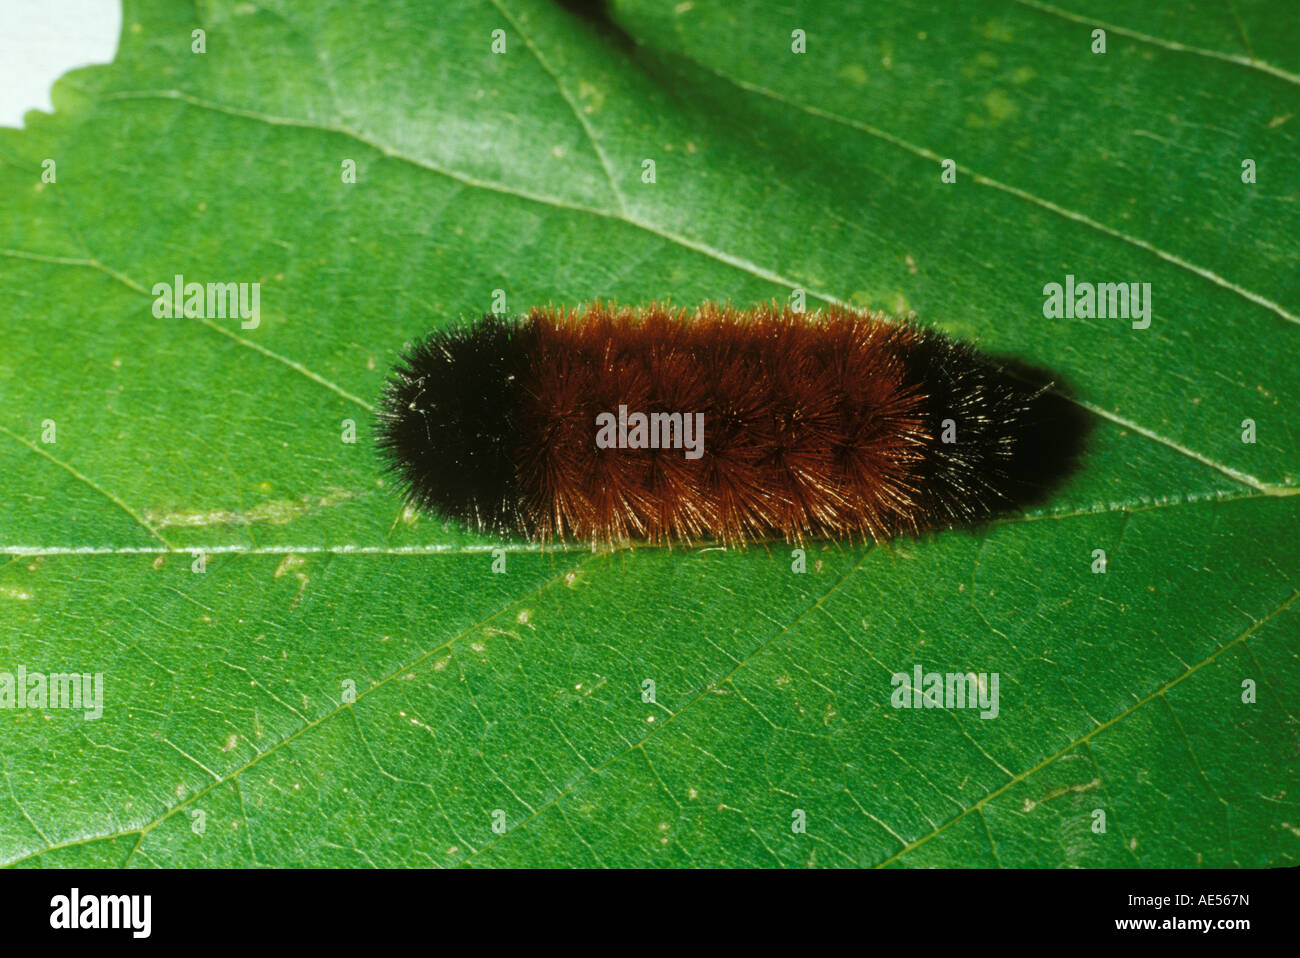 Banded woolly bear caterpillar, the larva of the Isabella tiger moth (Isia isabella) - Stock Image